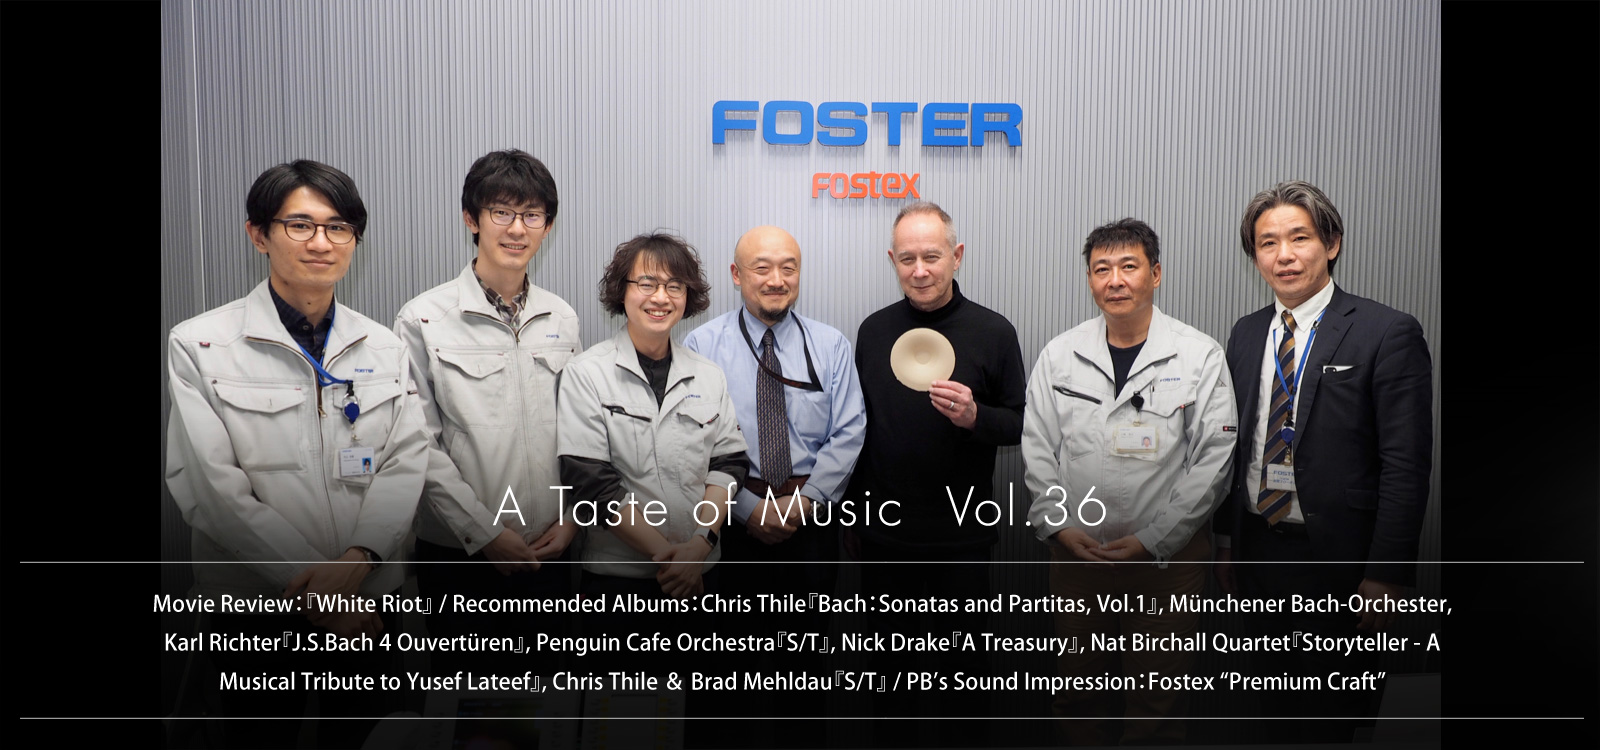 slider image A Taste of Music Vol.36